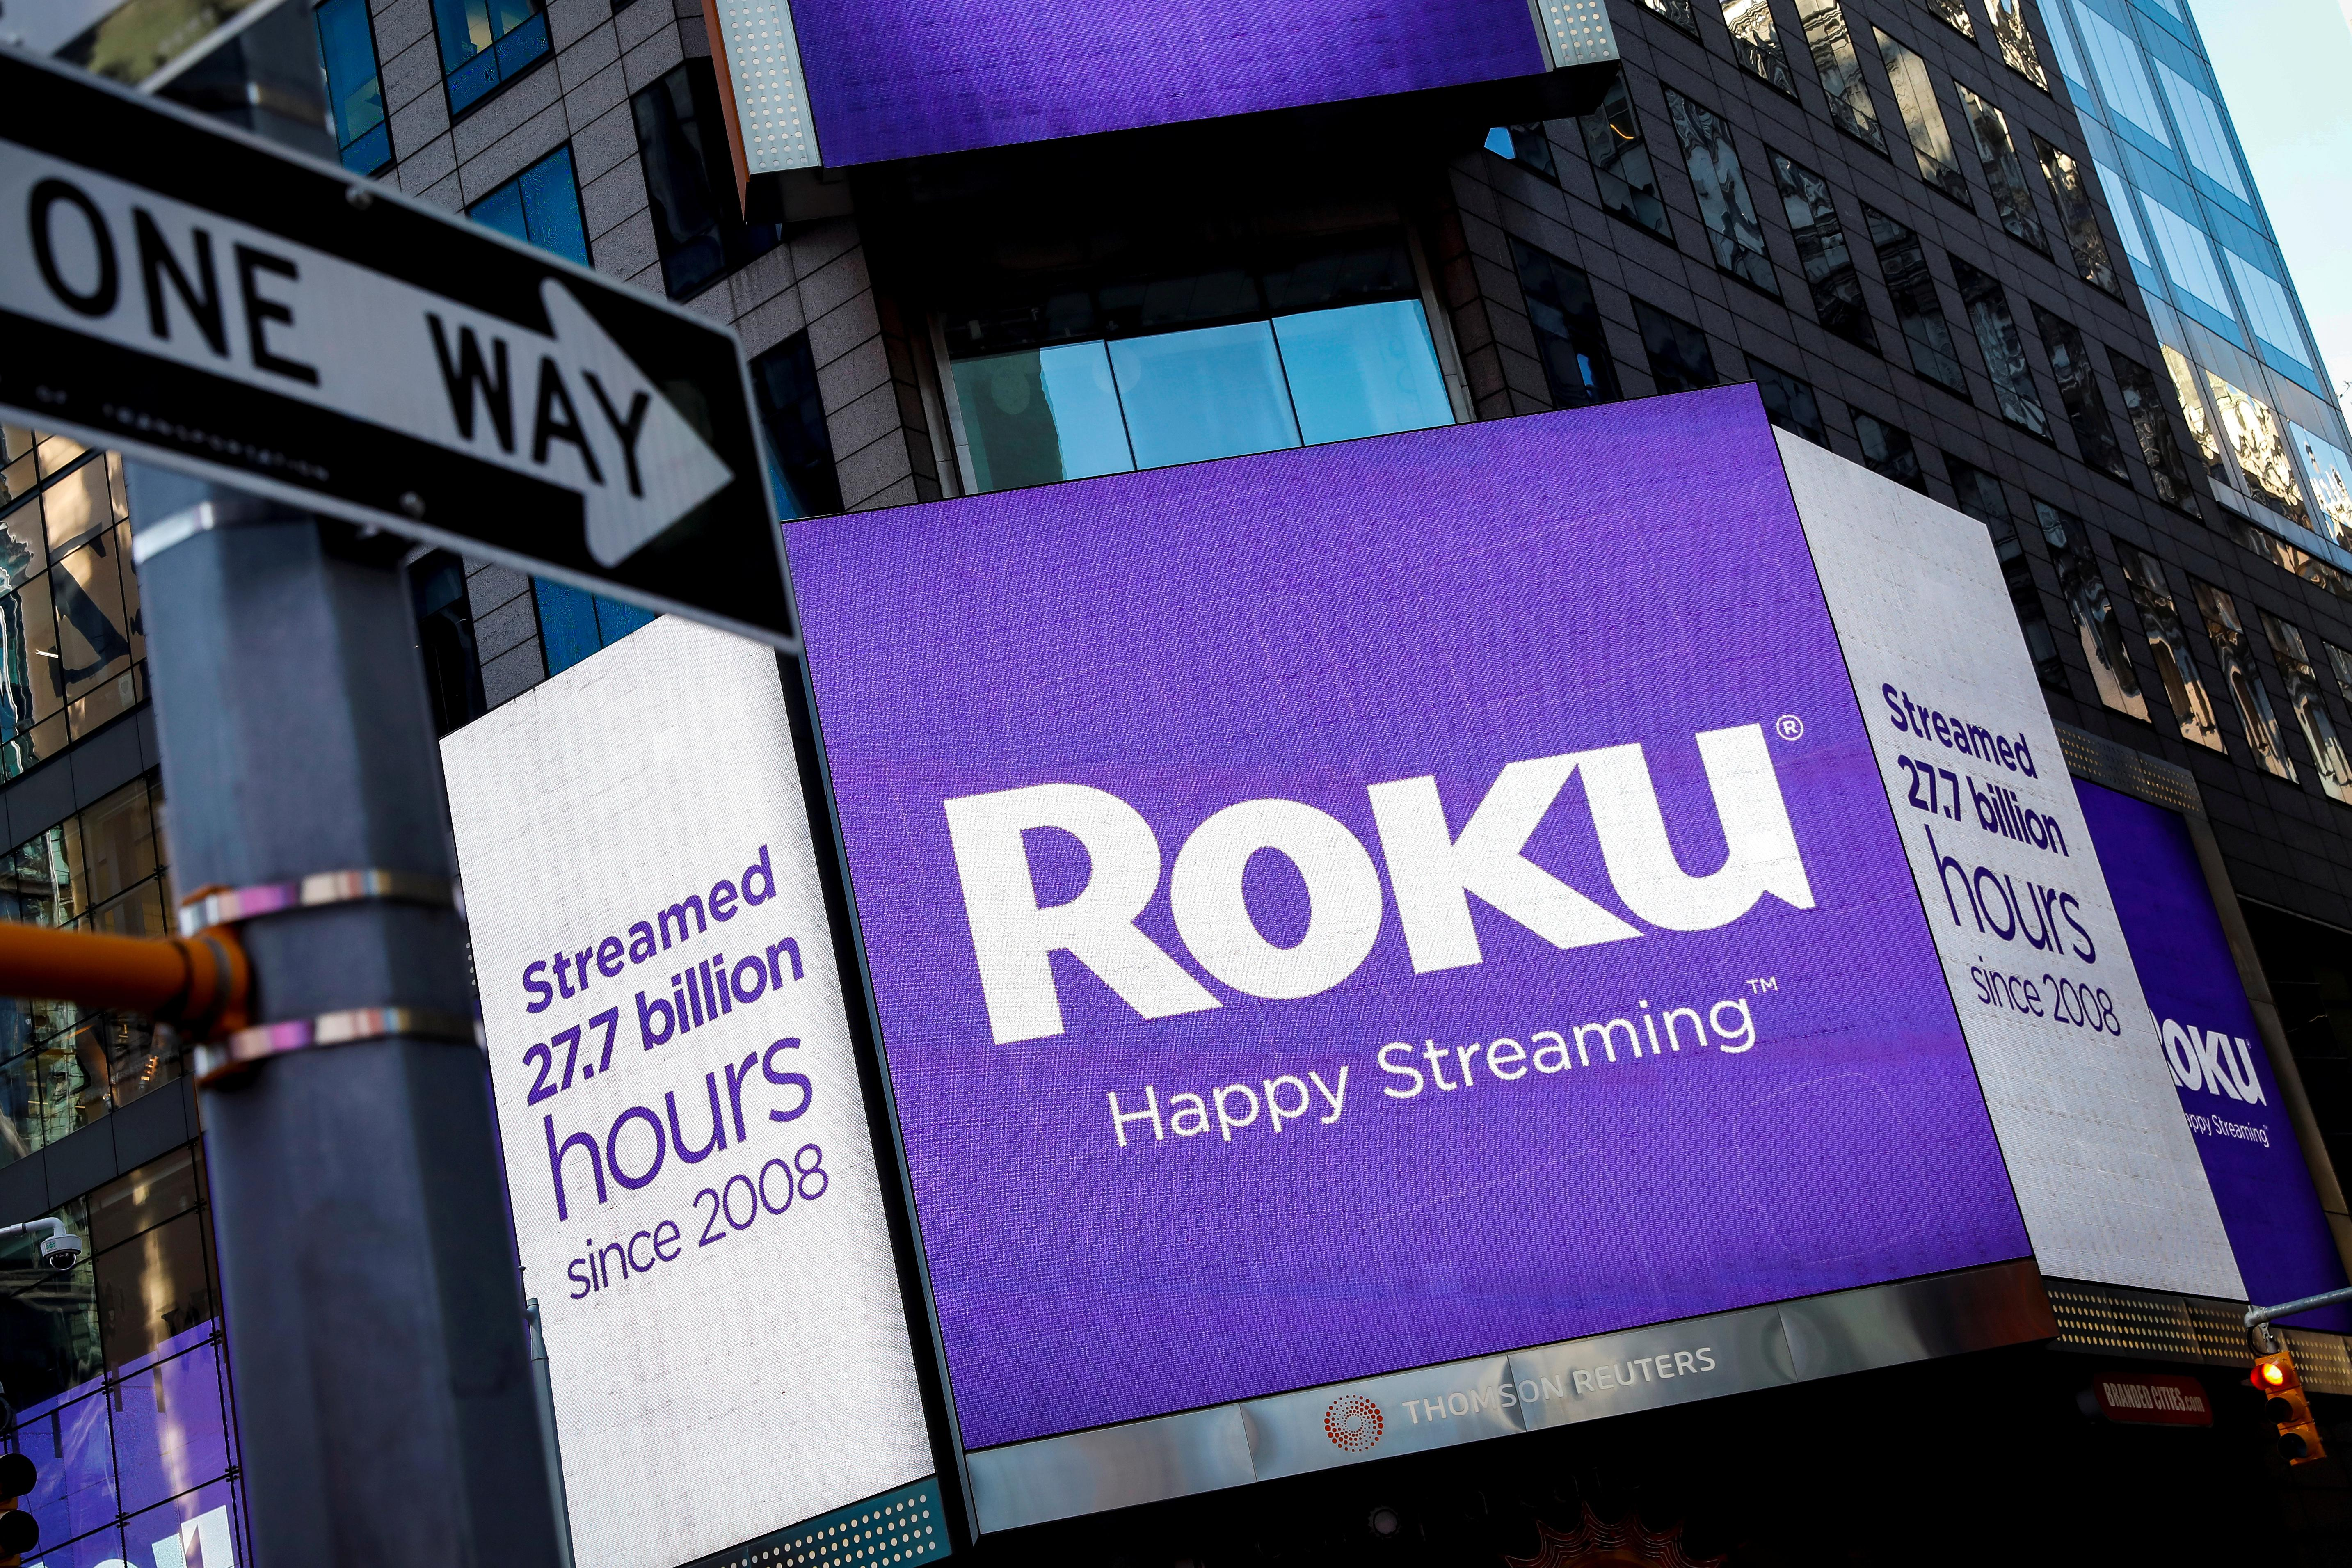 US recession will only ignite more cord-cutting and streaming: Roku exec